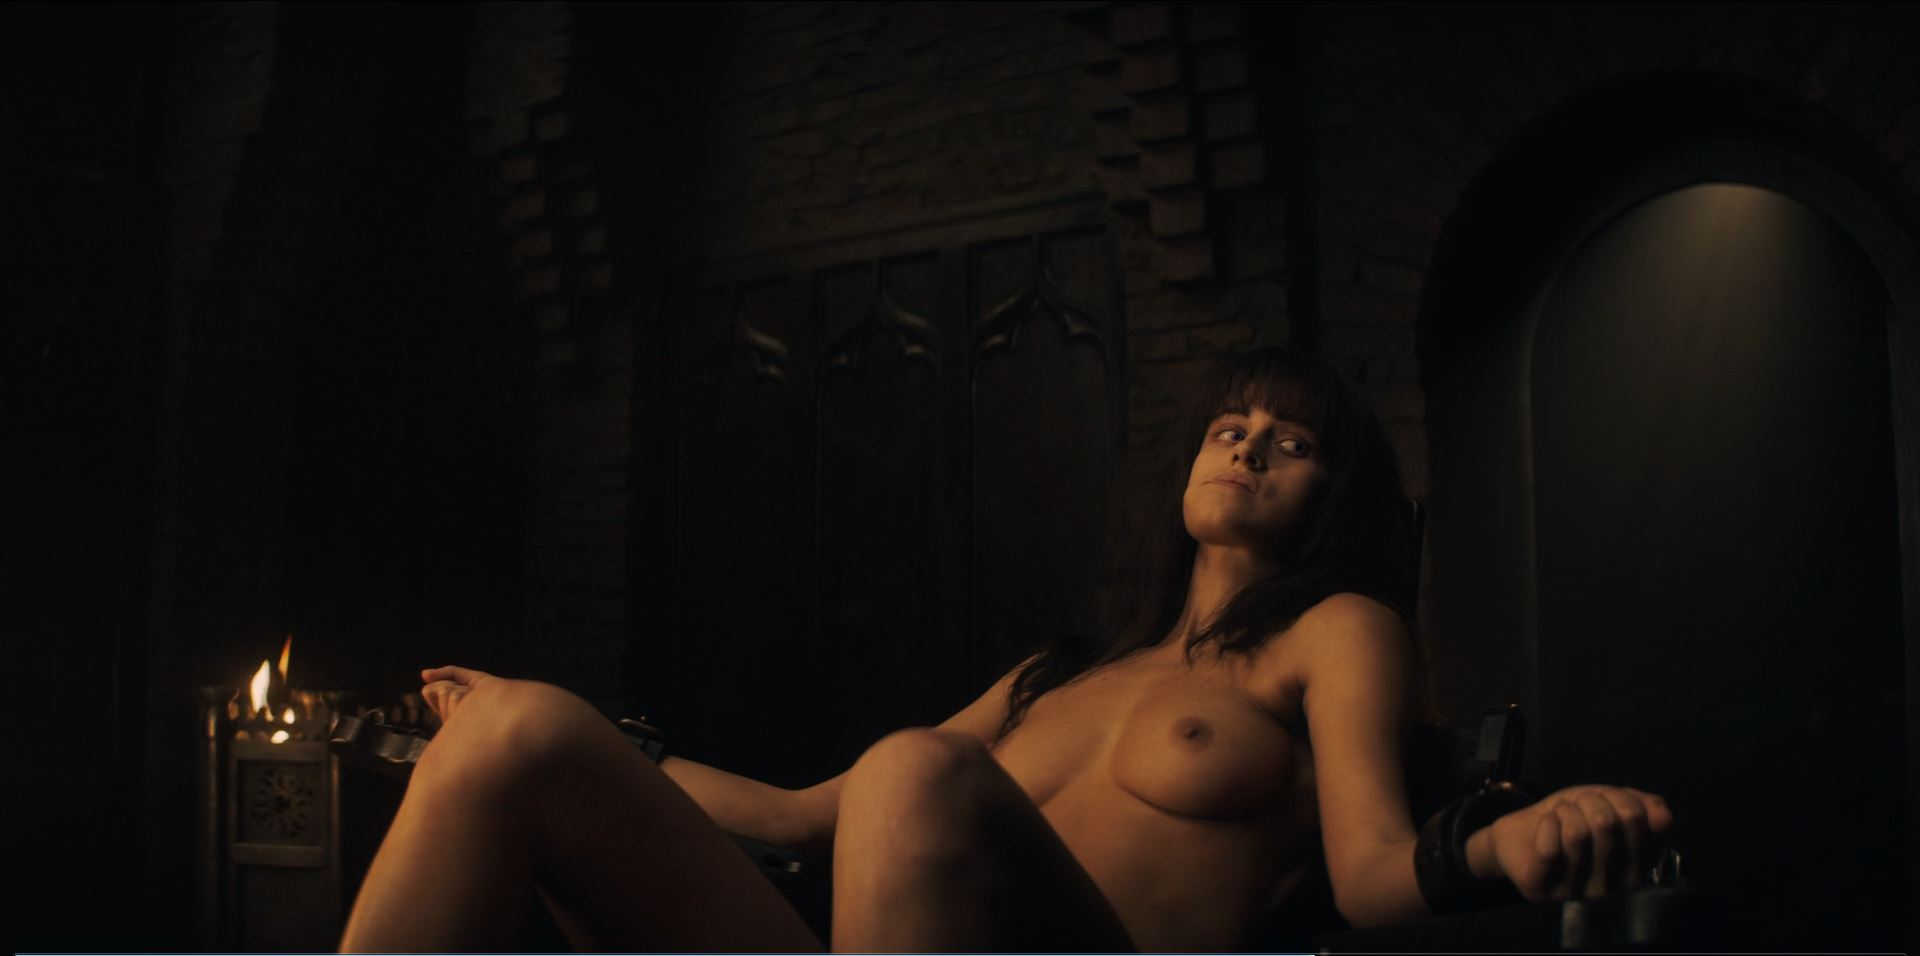 The Witcher - Yennefer nude